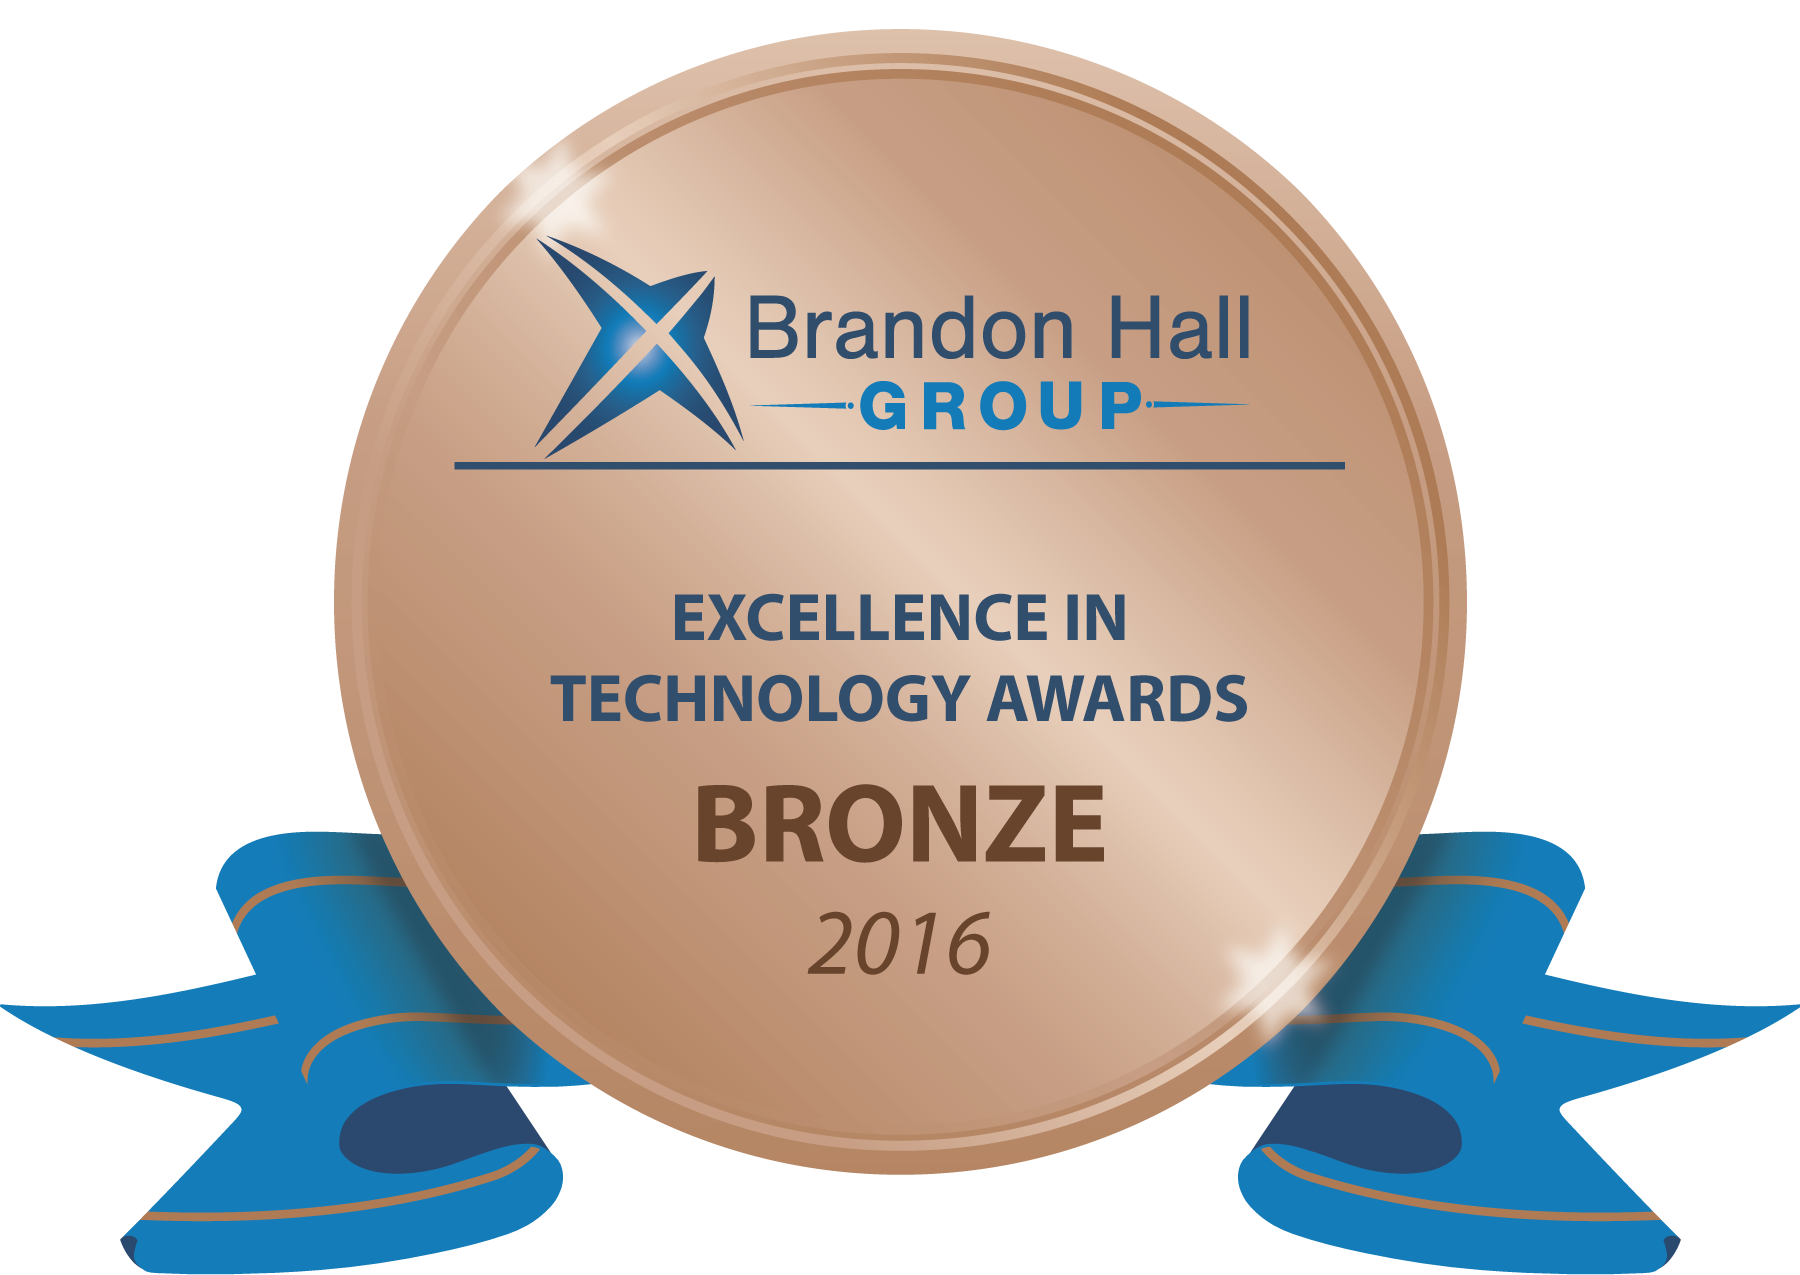 Brandon Hall Excellence in Technology 2016